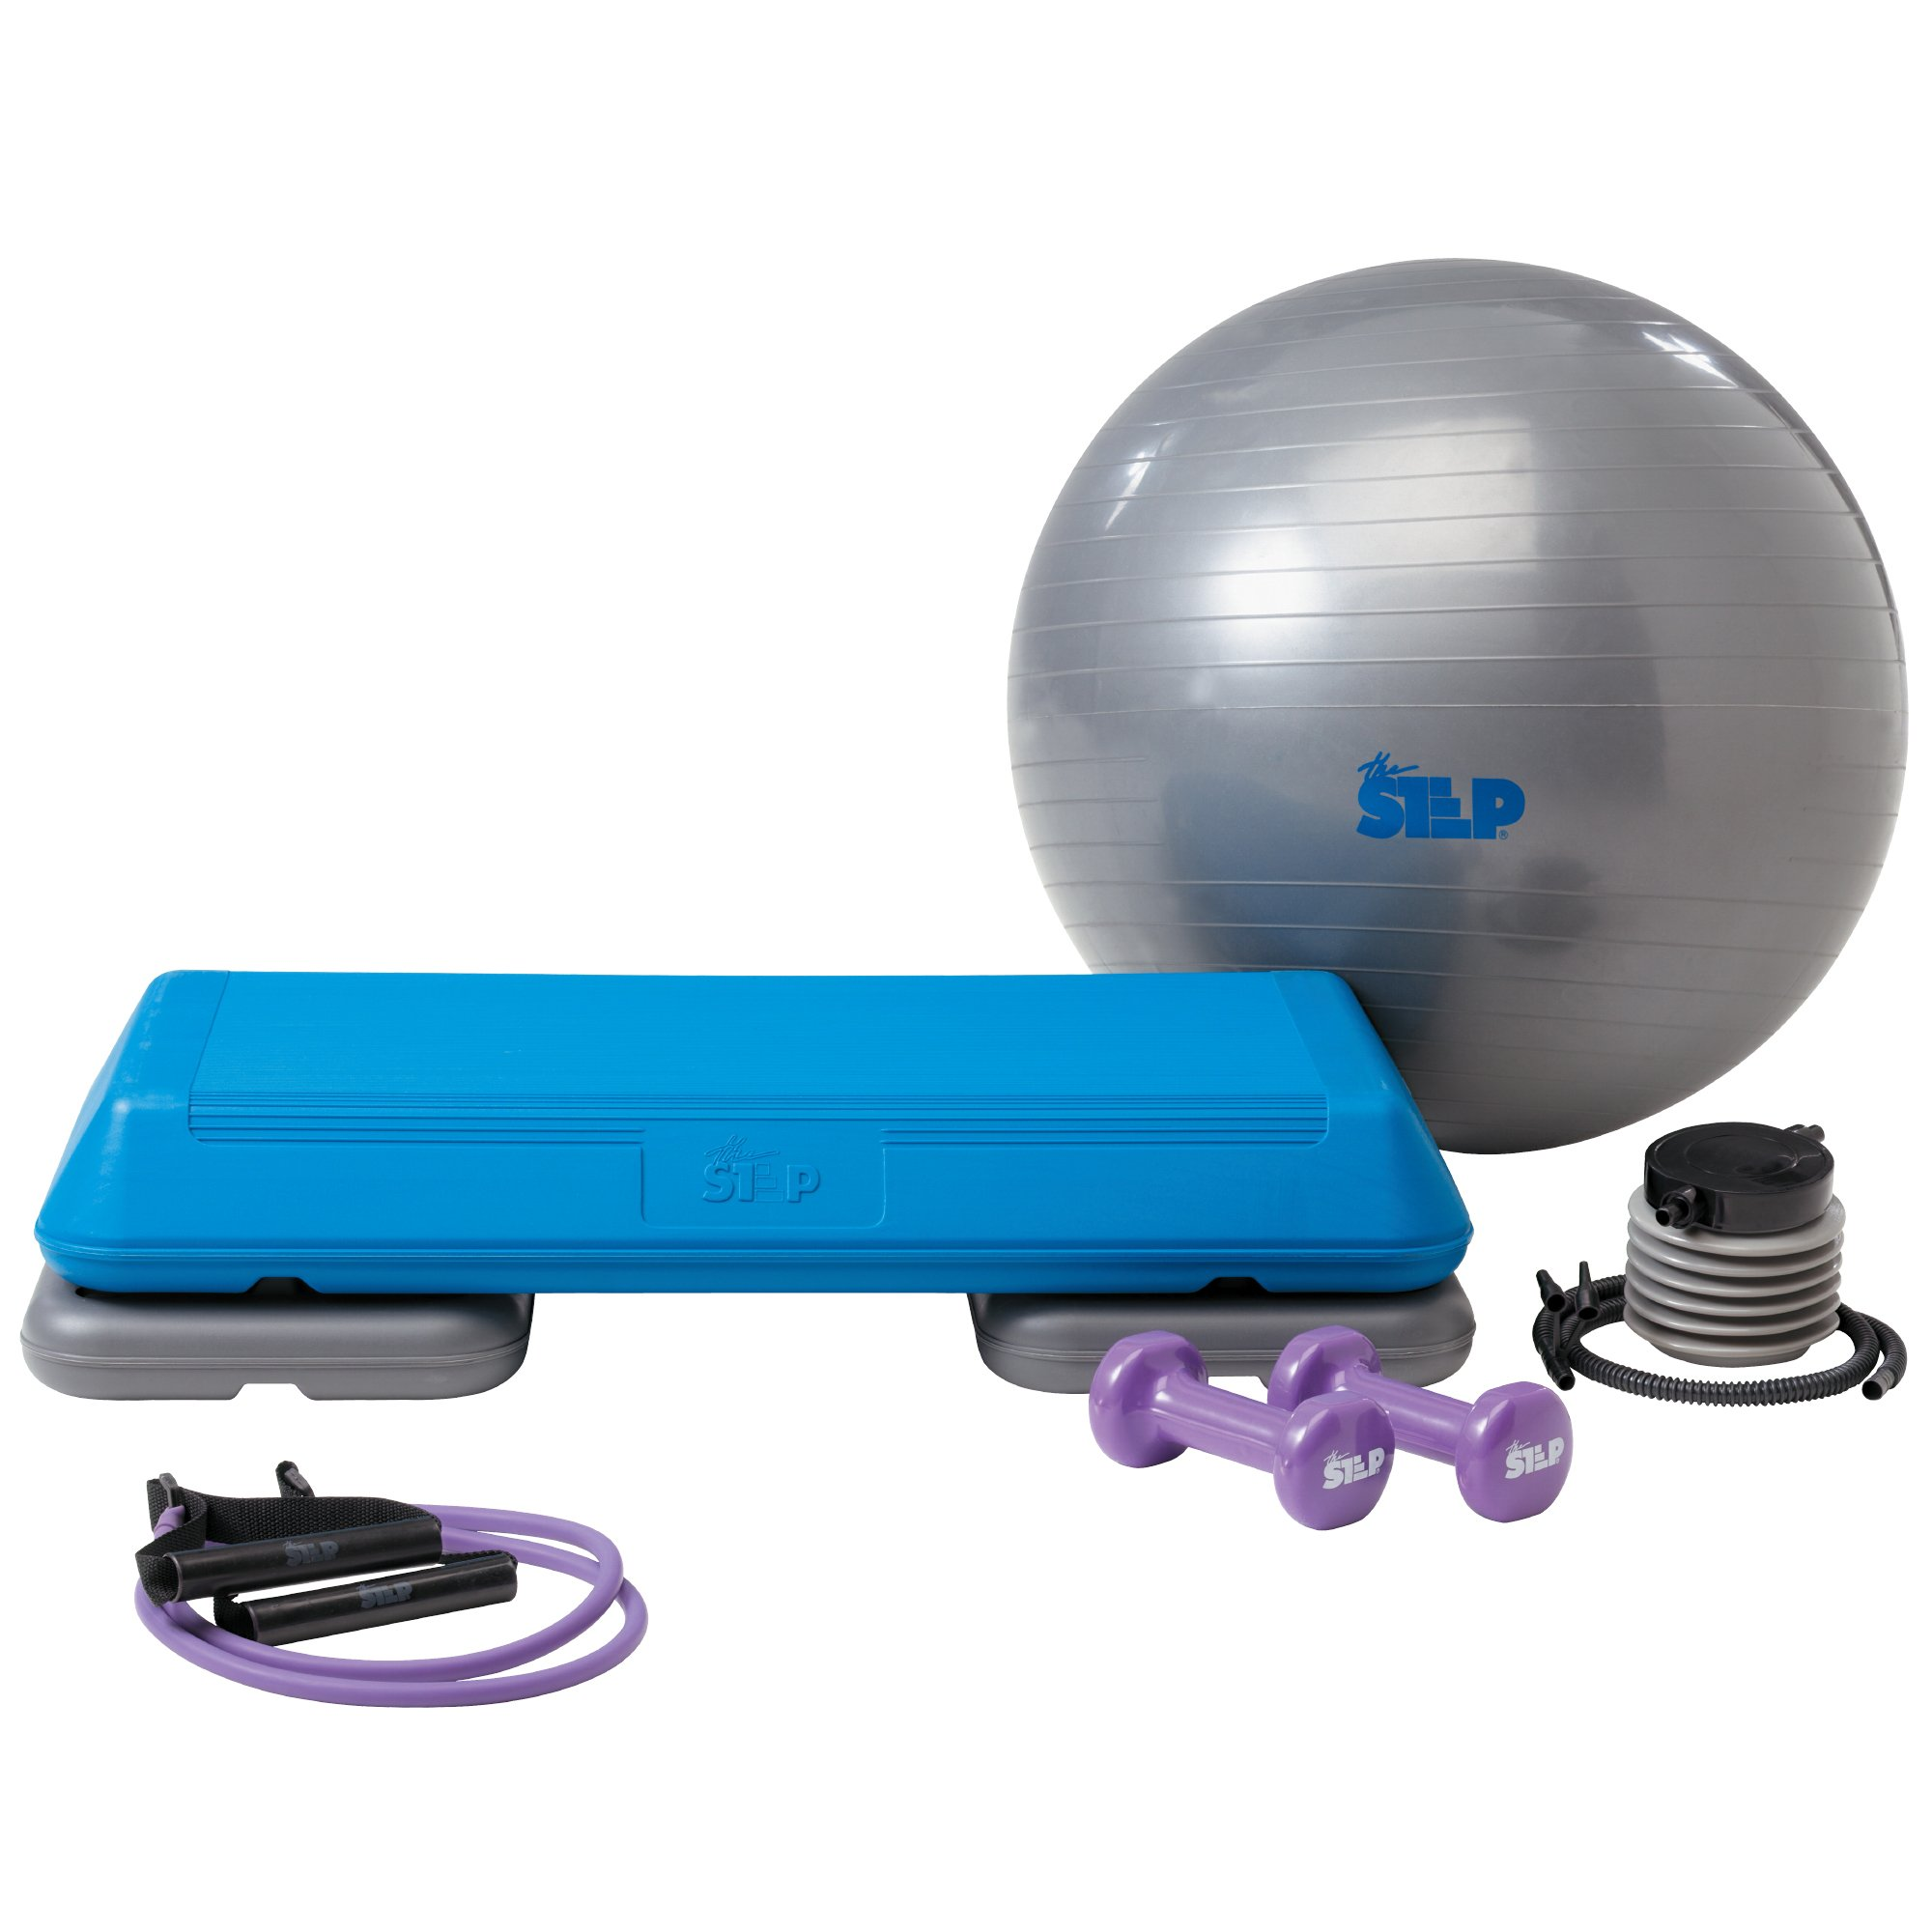 The Step Original Body Fusion Circuit-Size Aerobic Platform Set Includes Stability Ball, 3 lb. Dumbbells, Resistance Band, and Streaming Videos